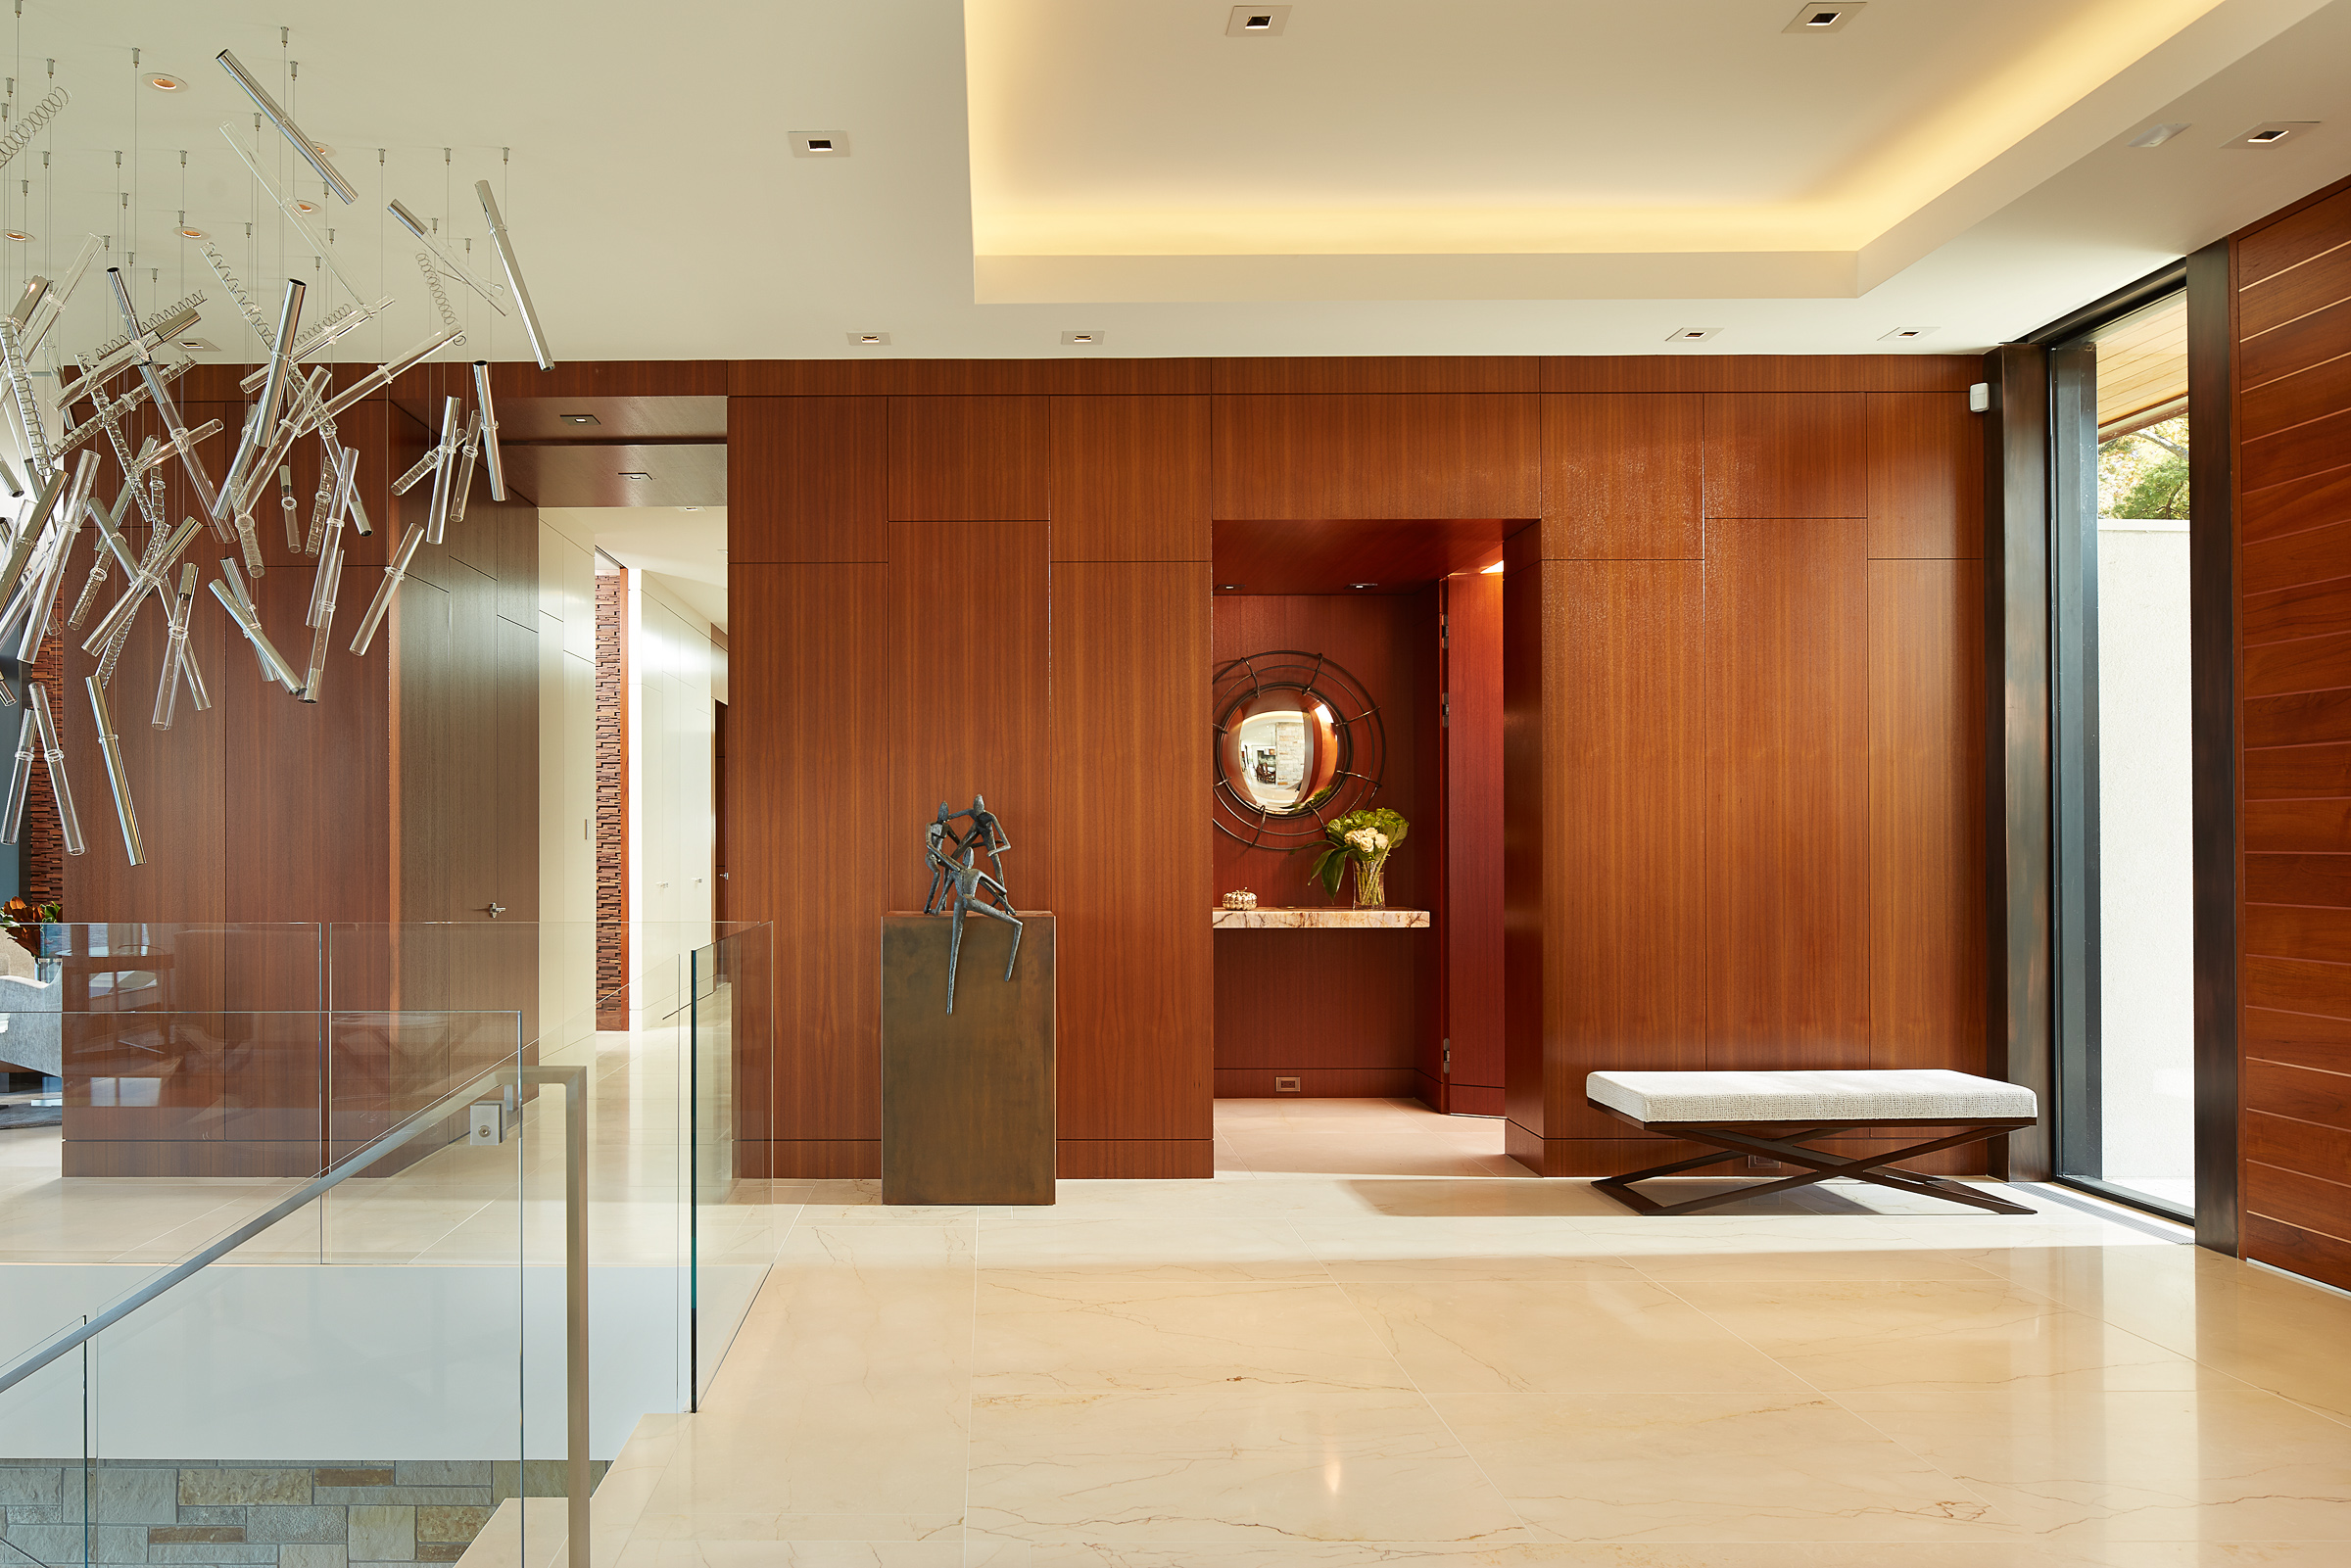 Custom teak designed wall panels conceal doors, closets and storage cabinets. by Alene Workman Interior Design